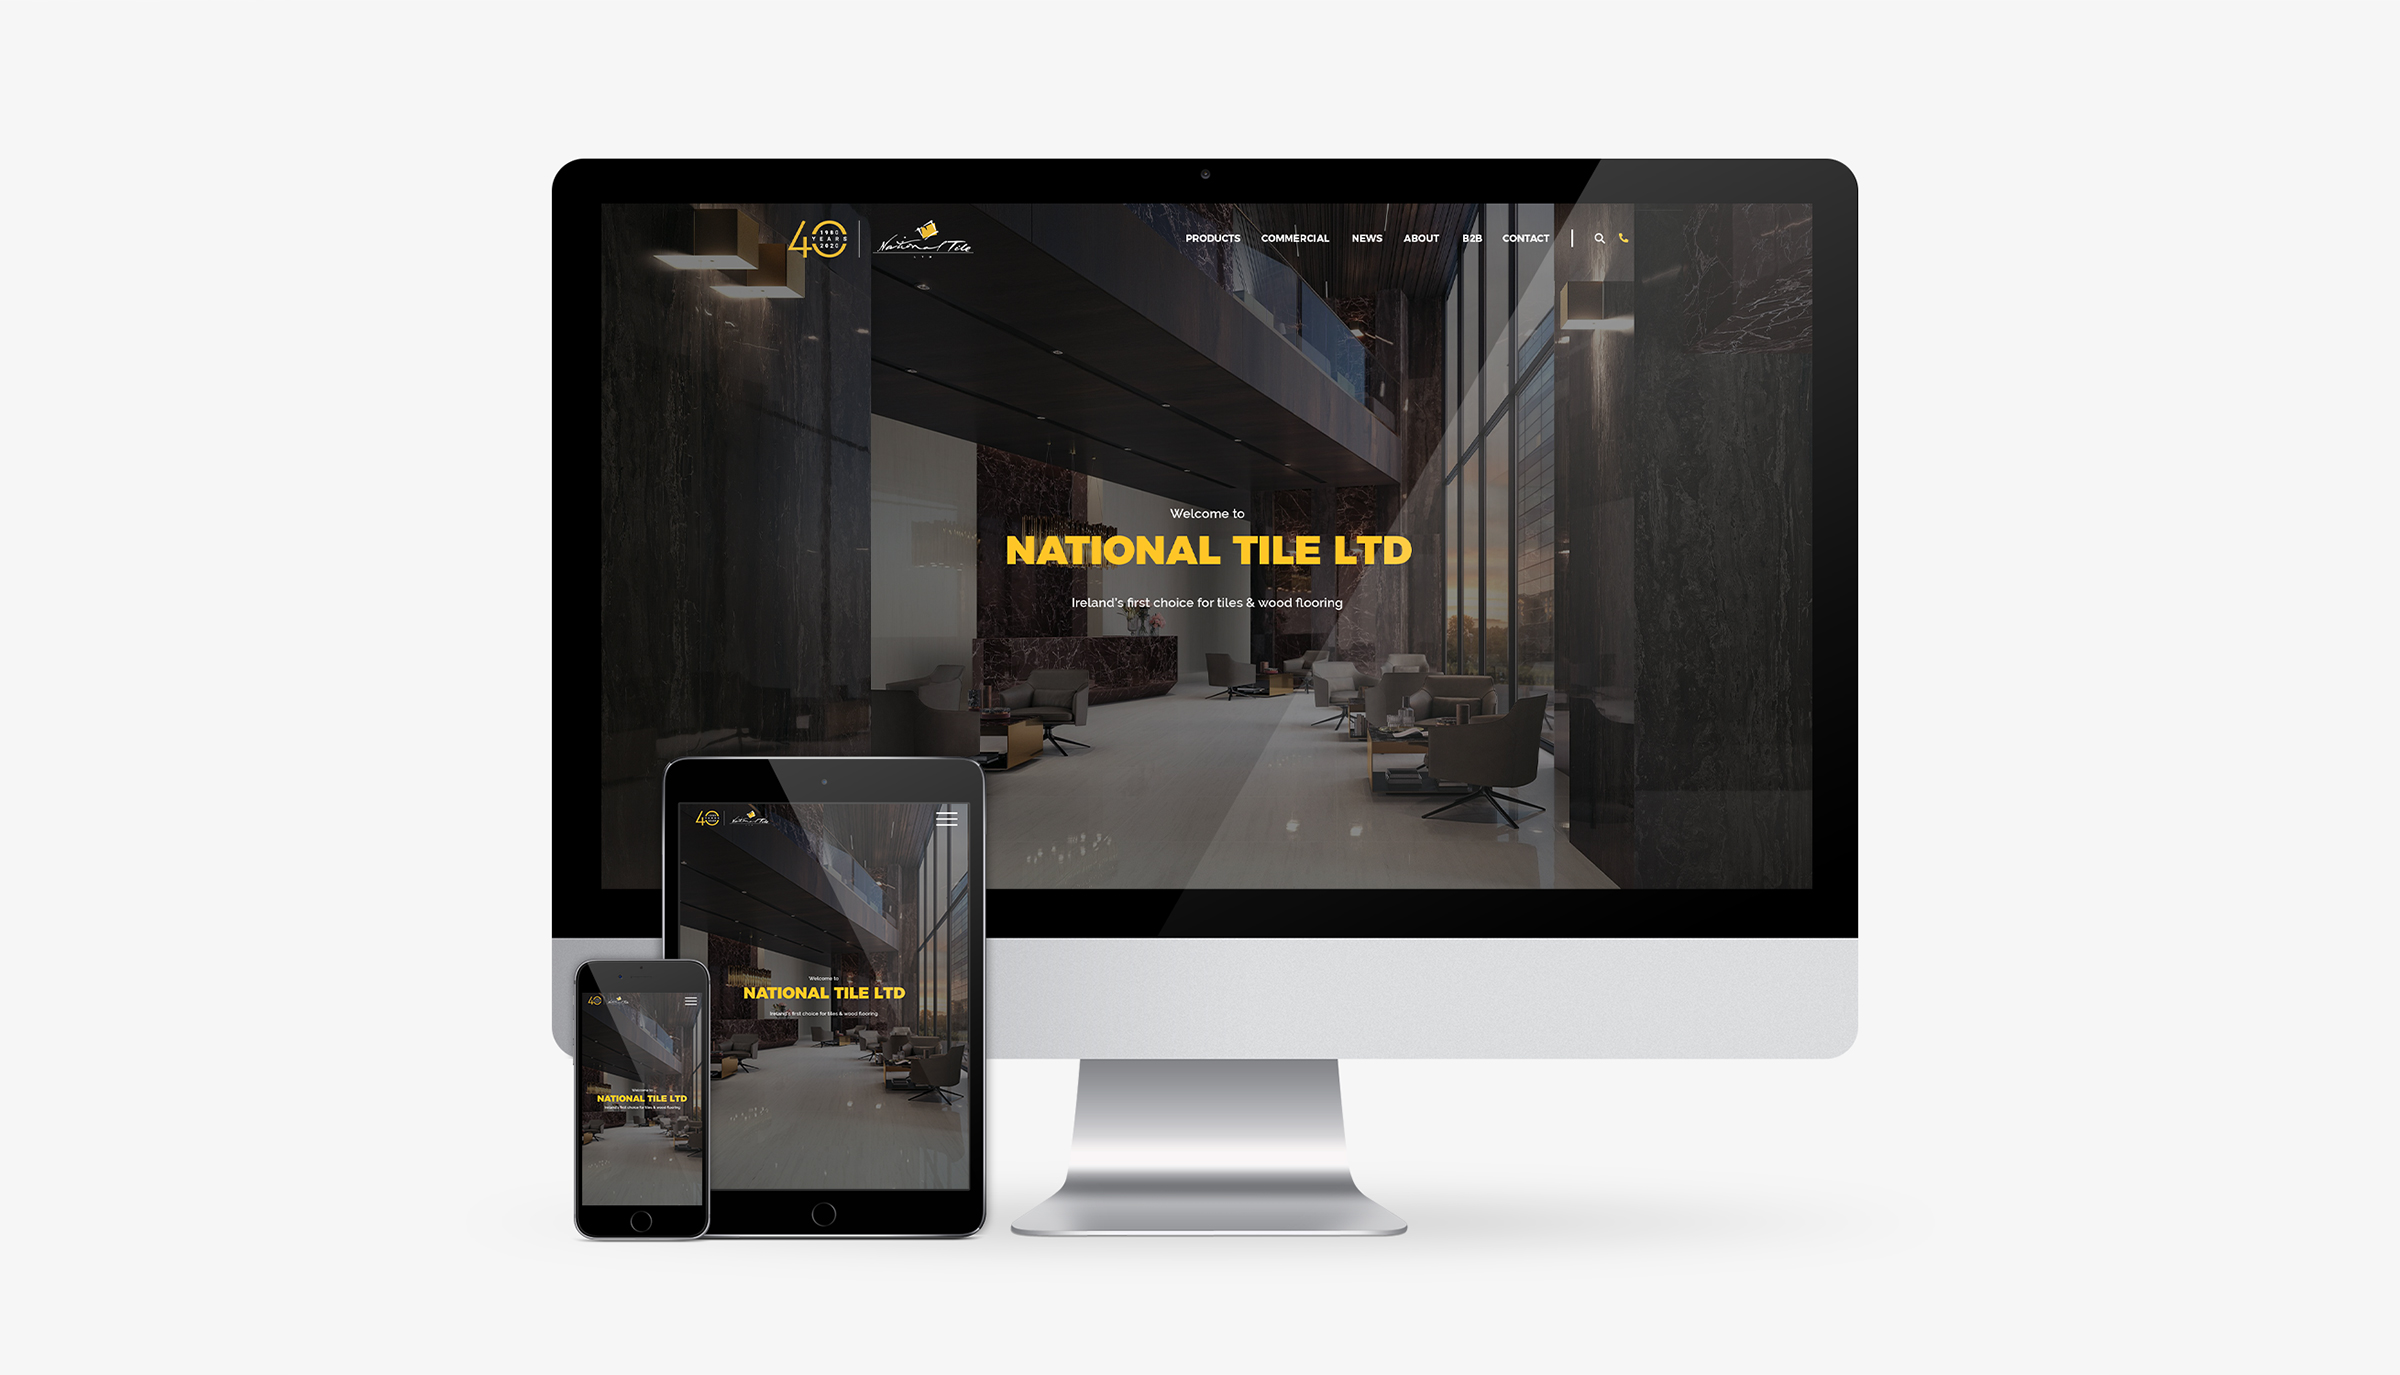 Multi devices mobile friendly rensponsive website for tile company, shops, factory